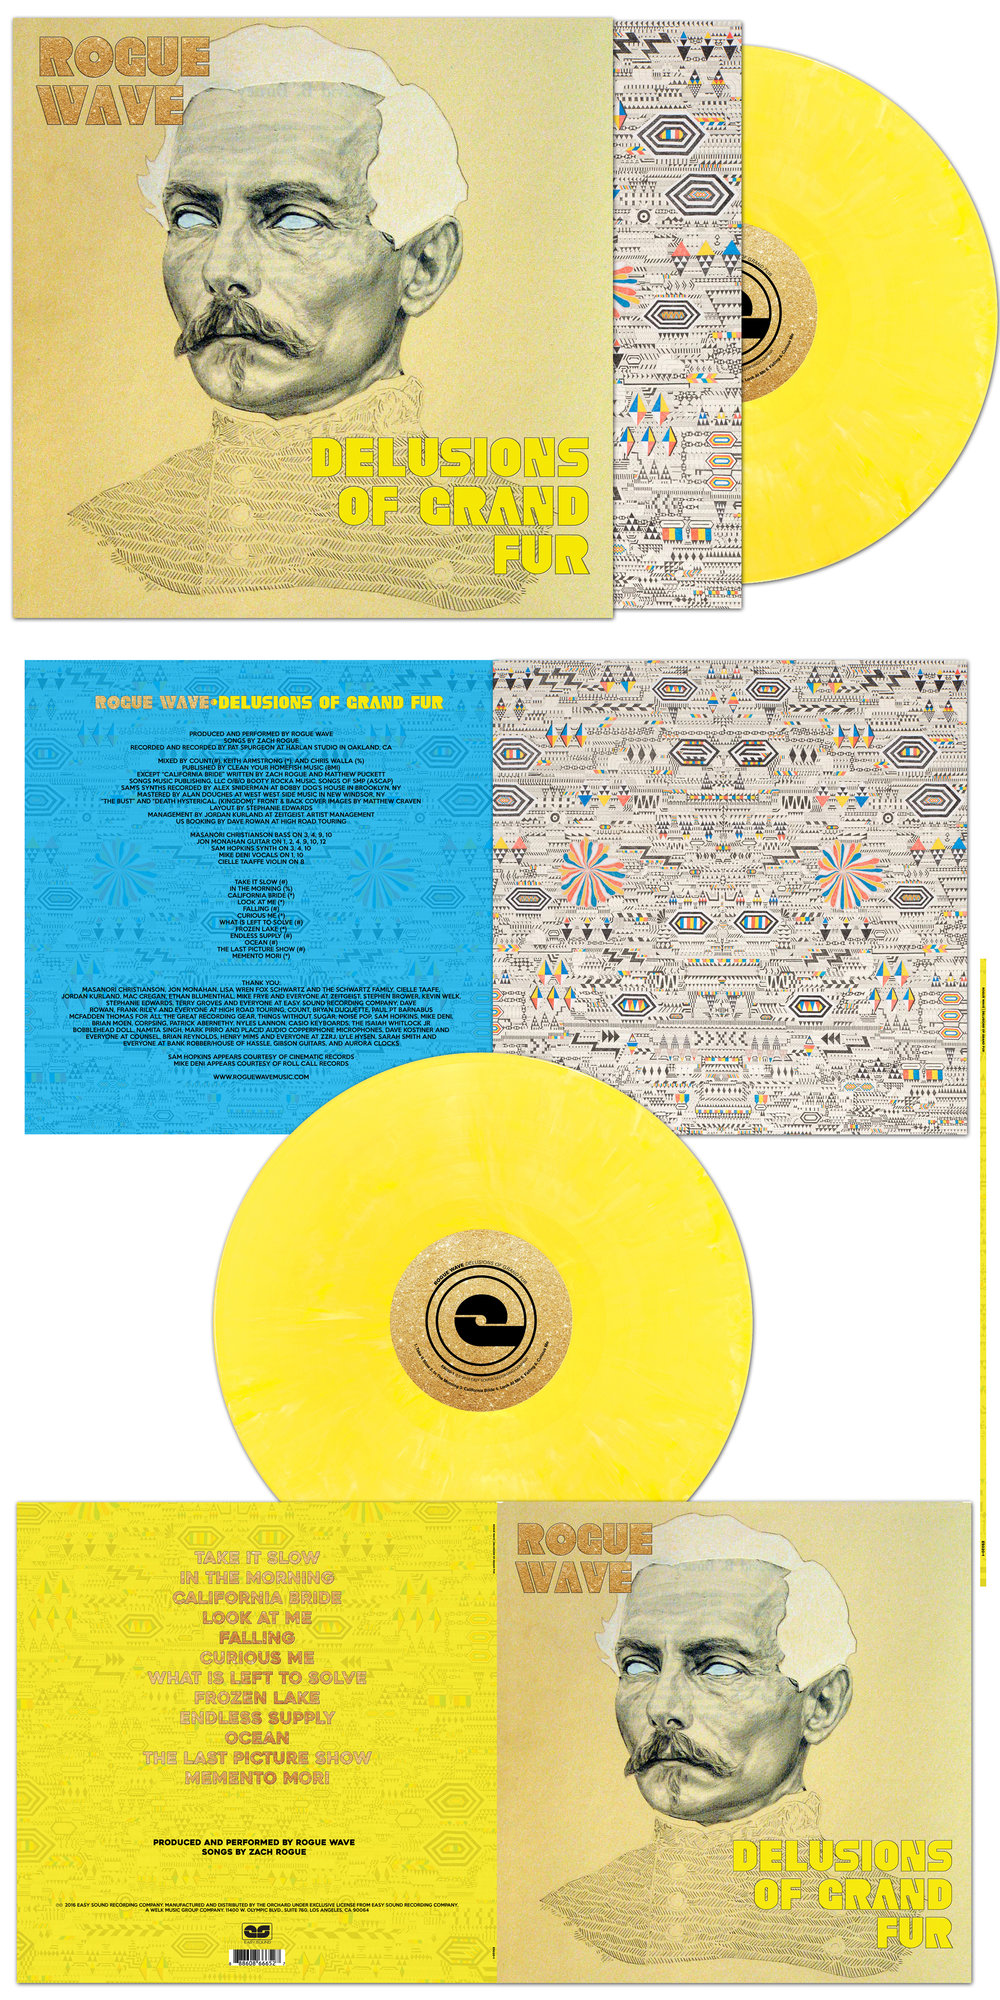 Rogue Wave Delusions of Grand Fur Vinyl Package | Layout and Concept. Images by Matthew Craven